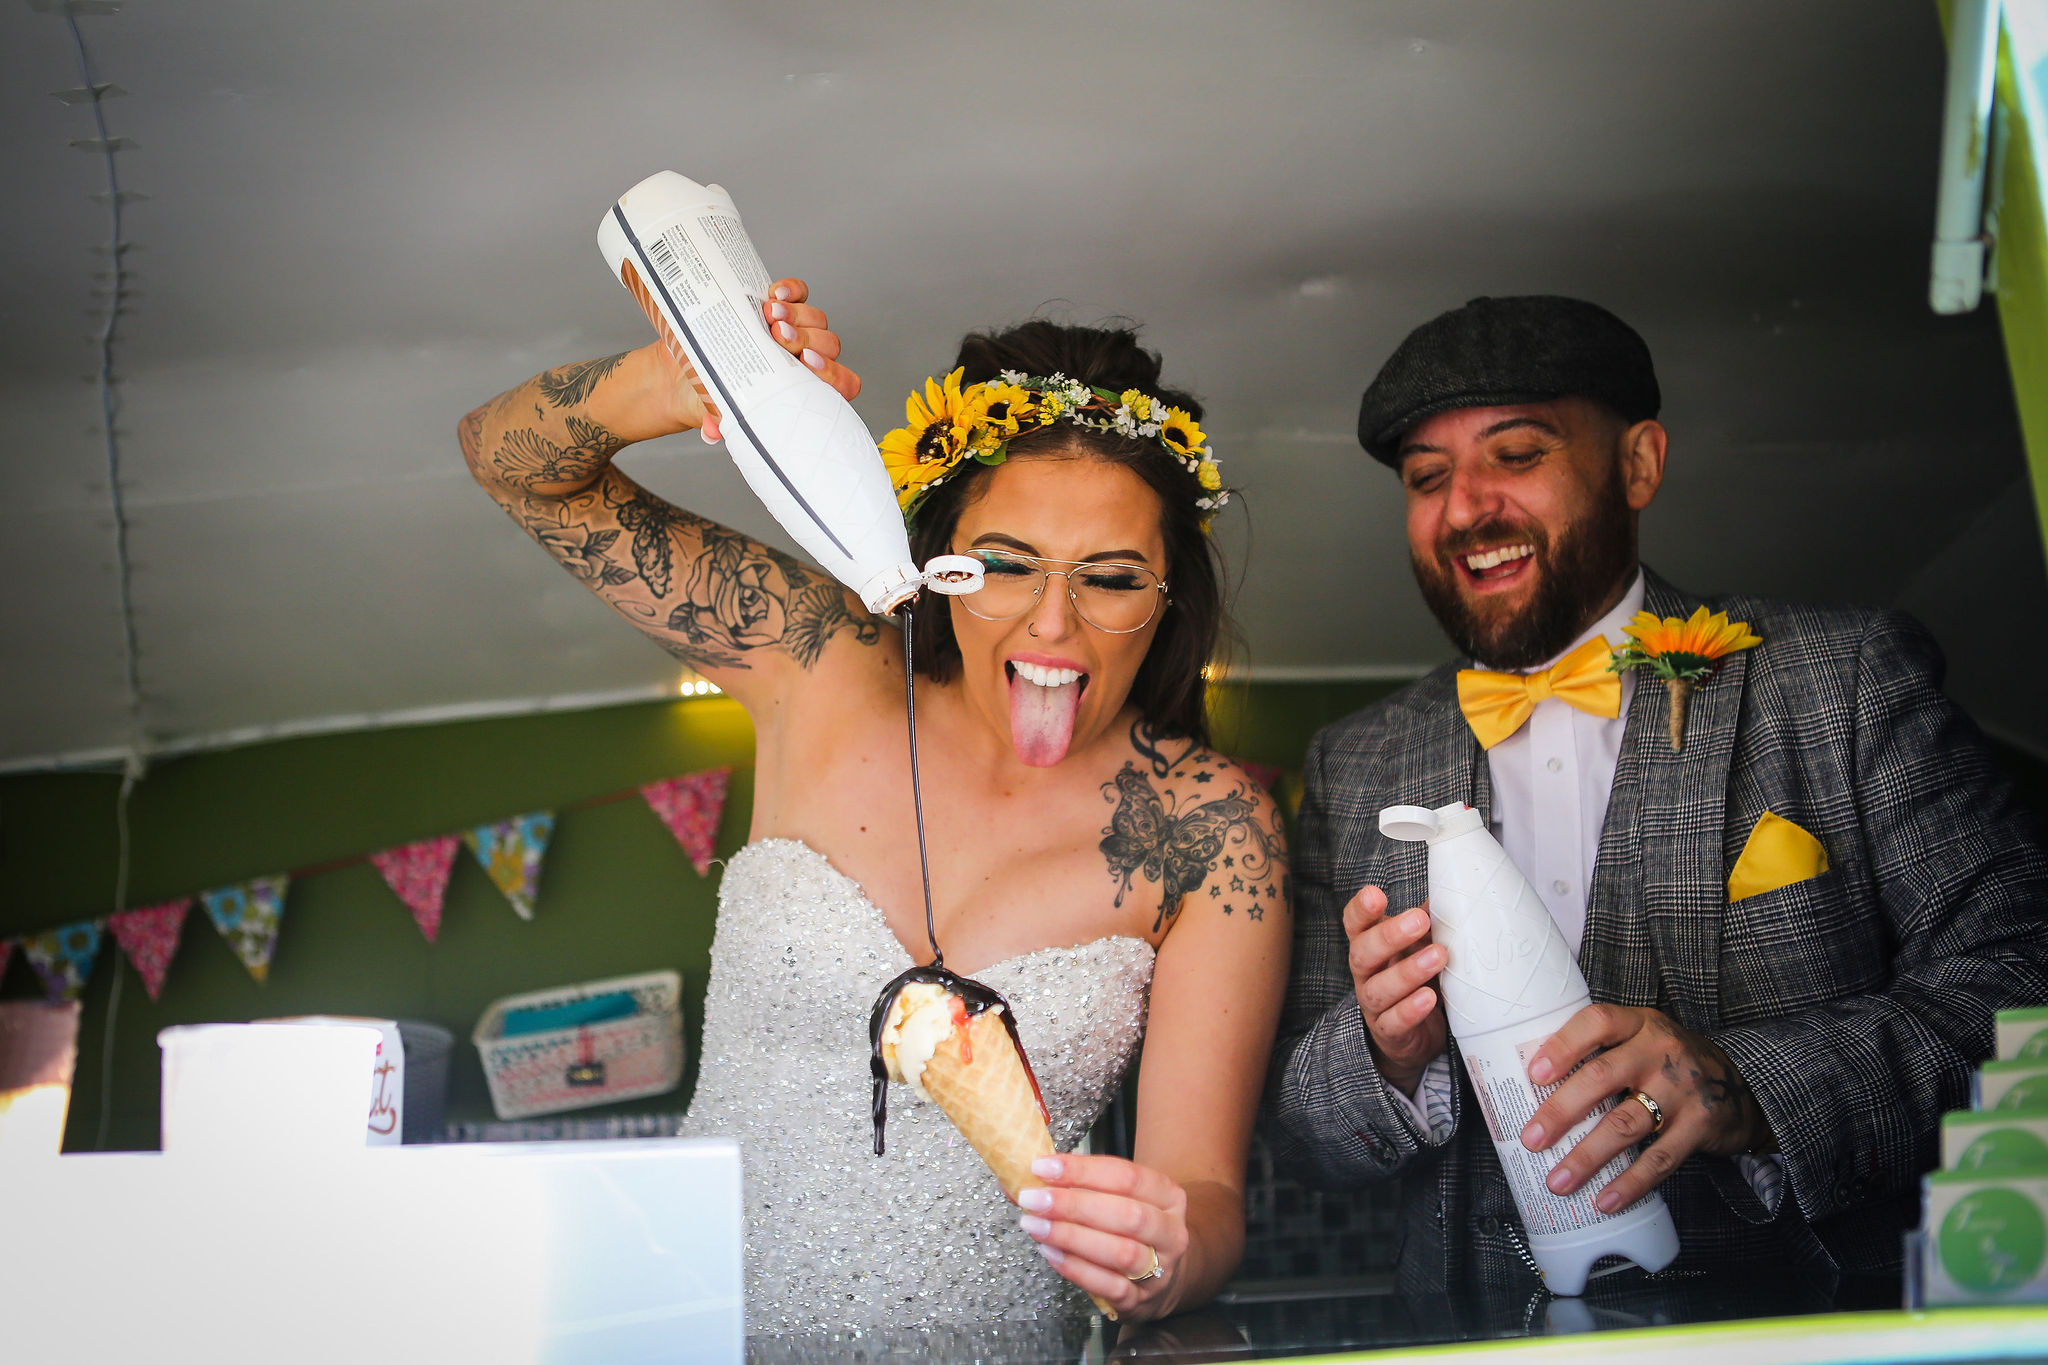 Harriet&Rhys Wedding - Magical sunflower wedding - quirky wedding with ice cream van - bride and groom in ice cream van